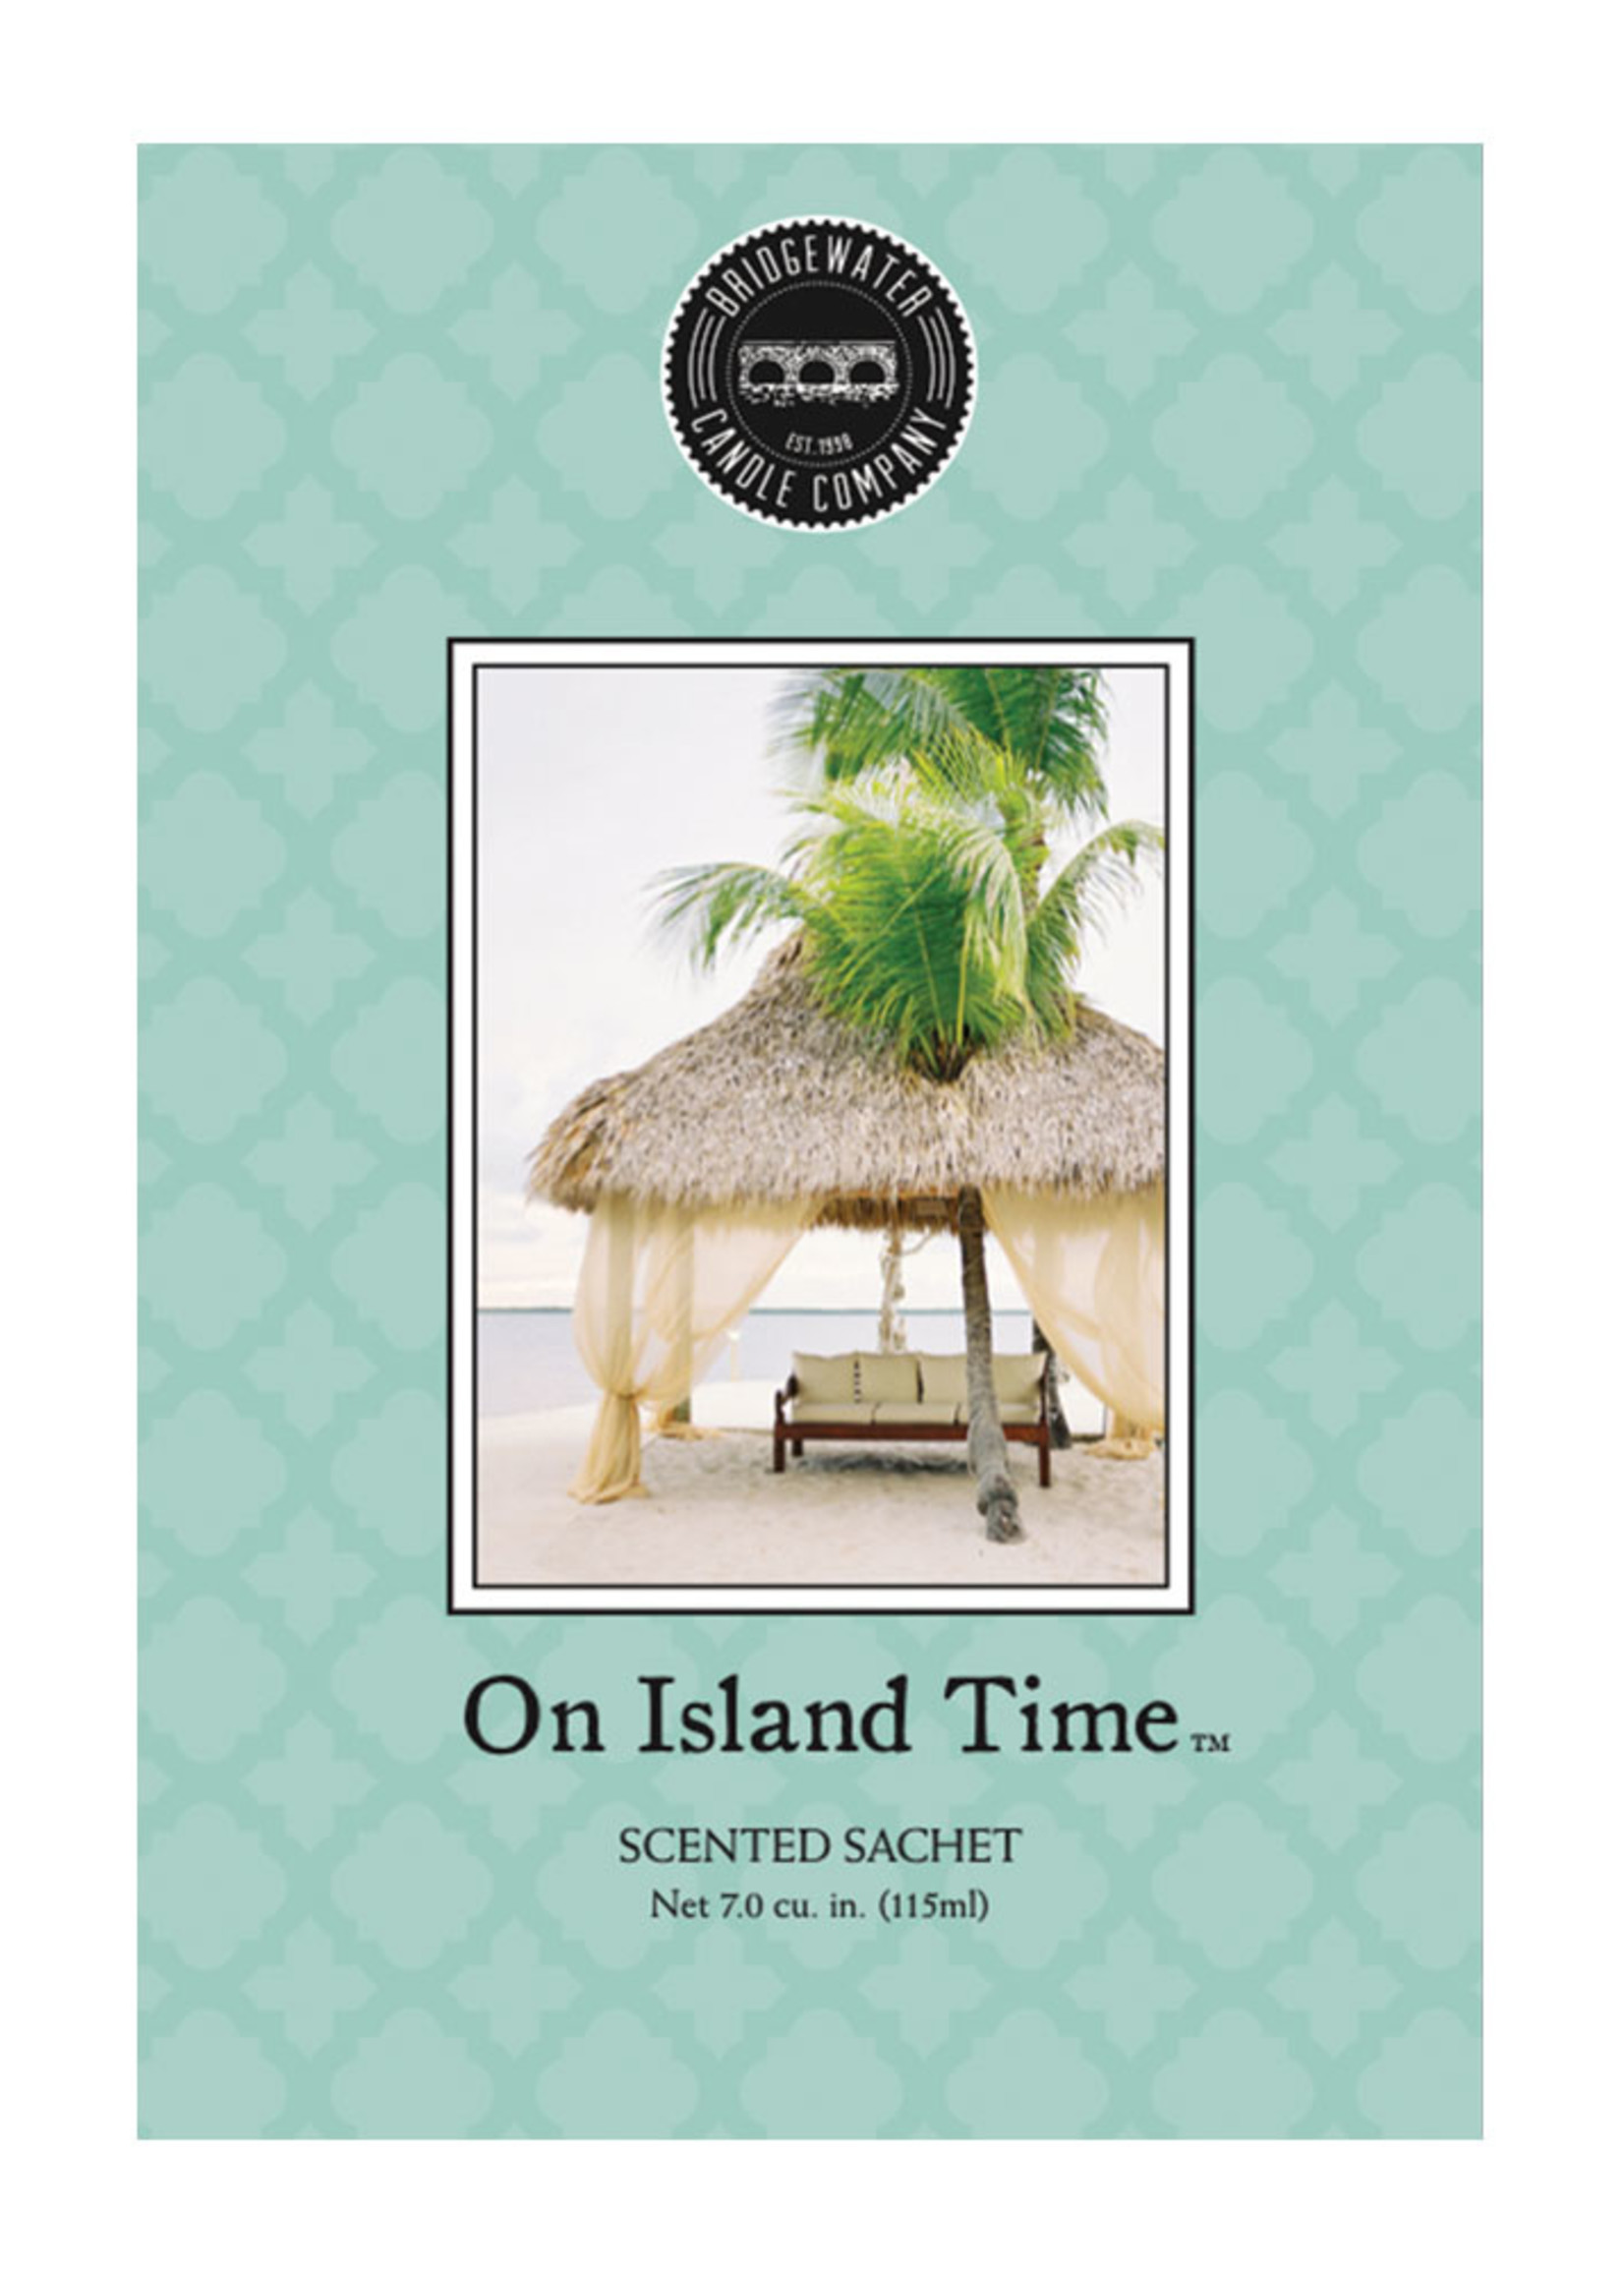 Scented Sachet On Island Time